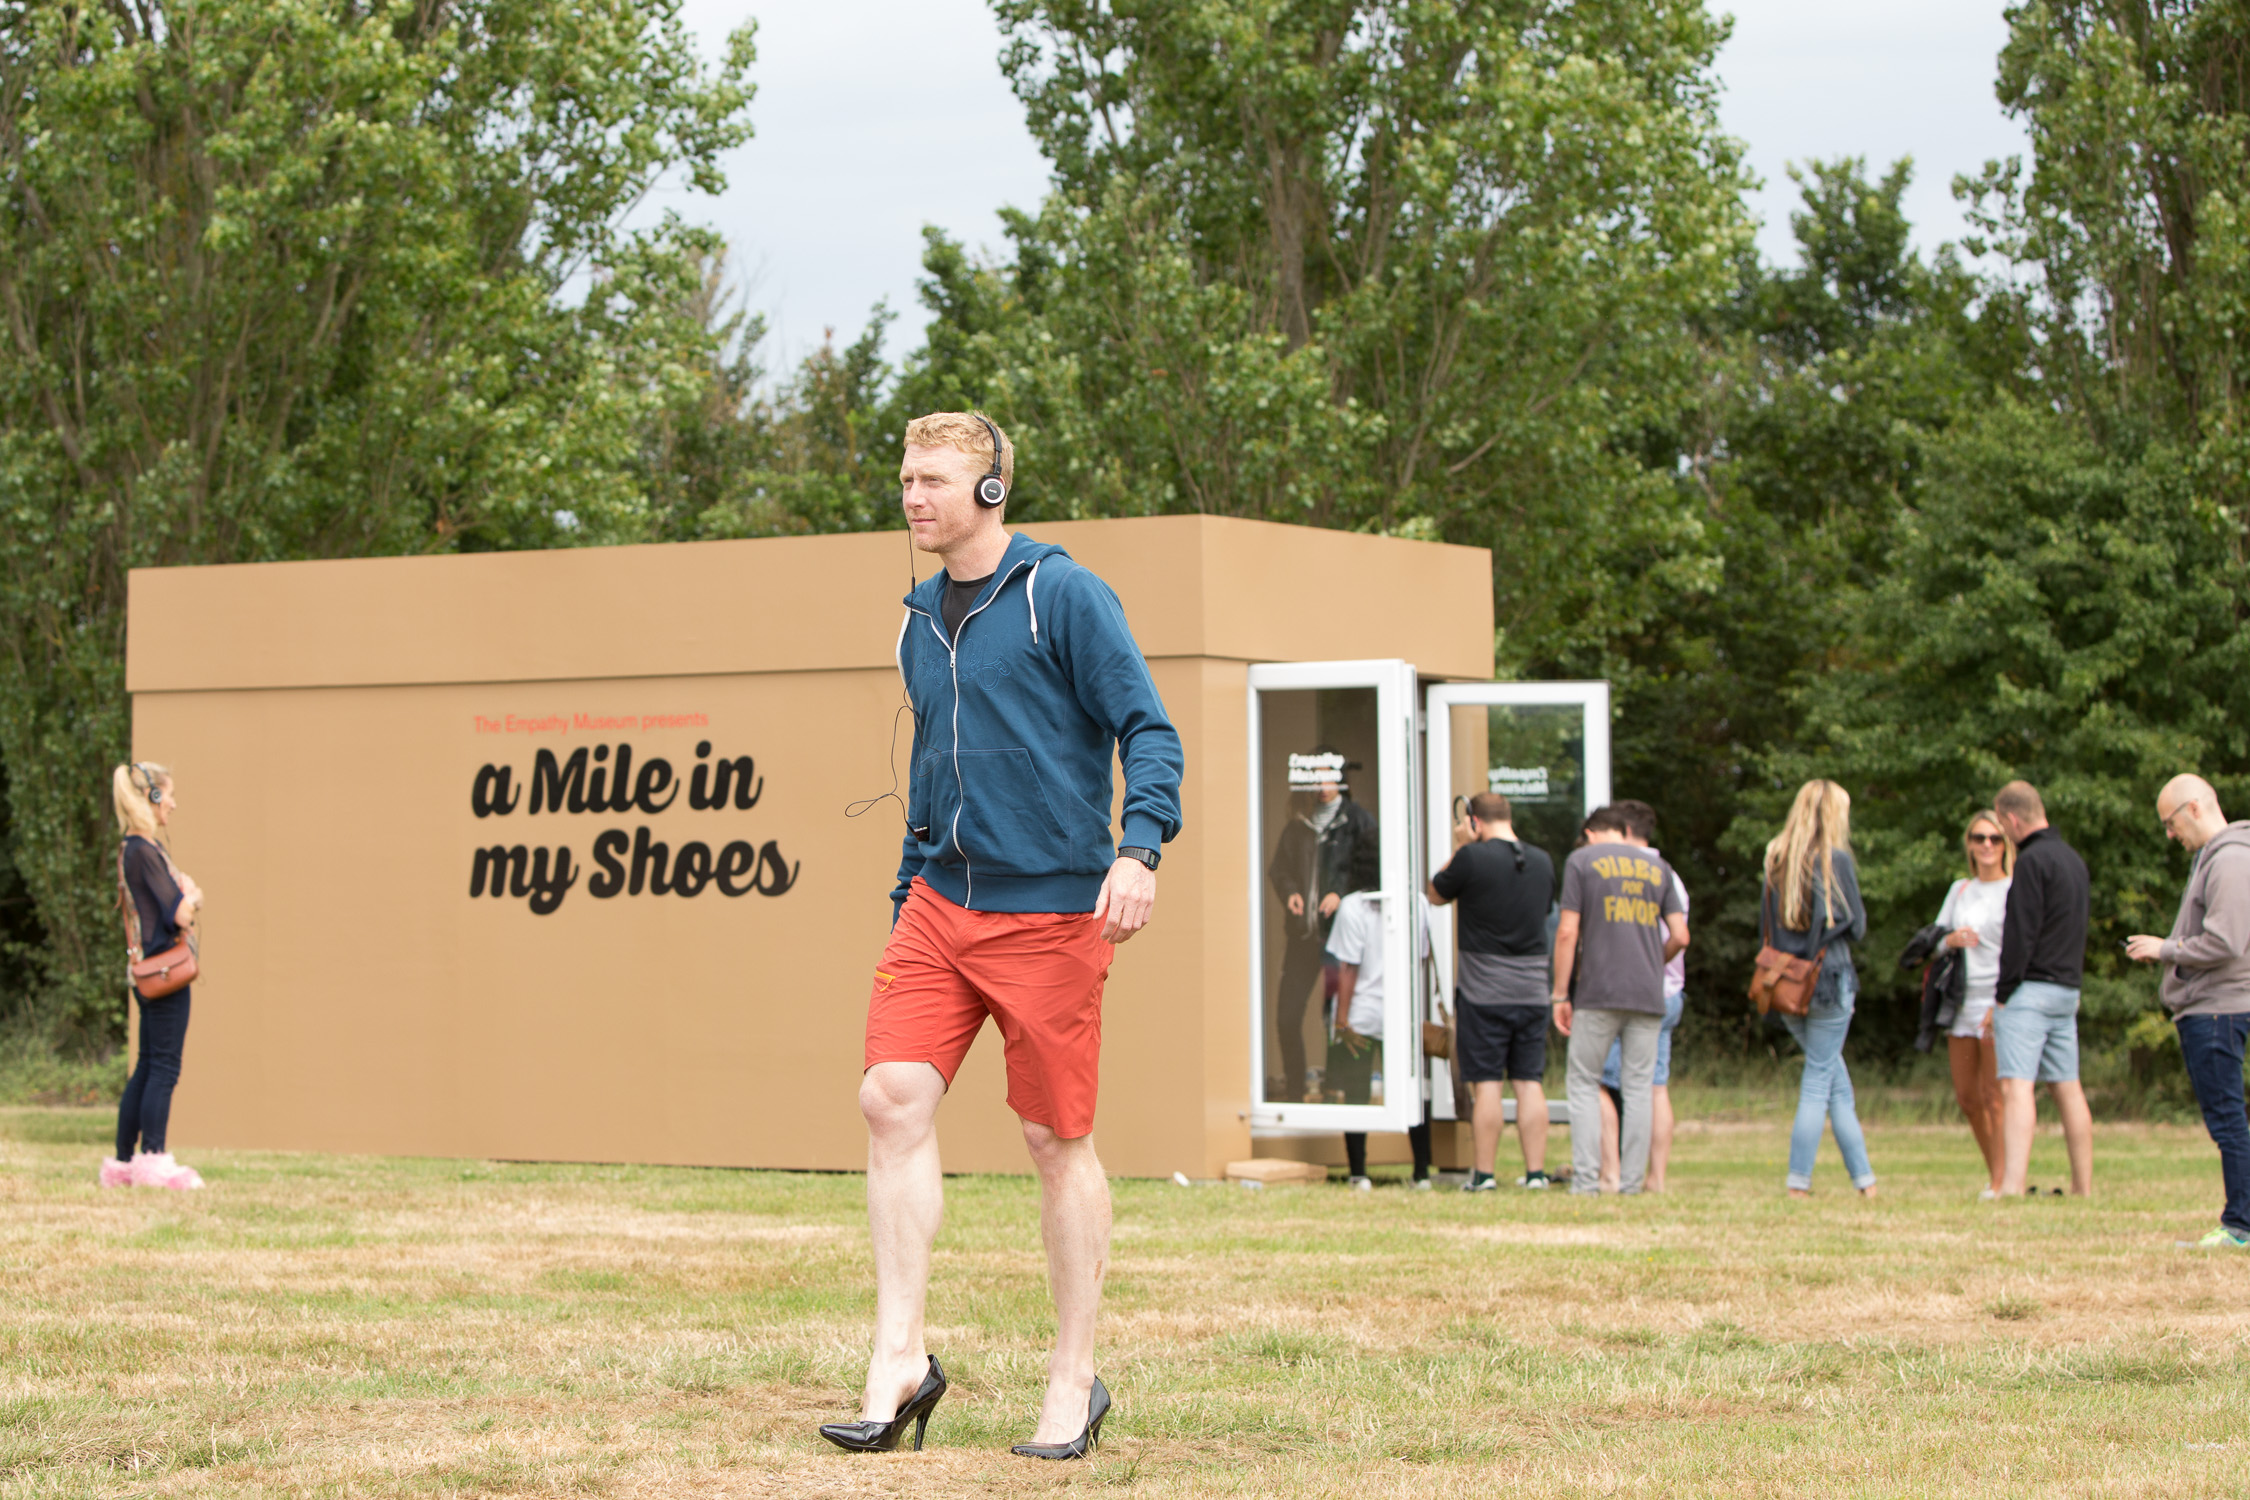 Author and adventurer  Alastair Humphreys  taking part in the  A Mile In My Shoes  exhibit at  Offgrid 2017